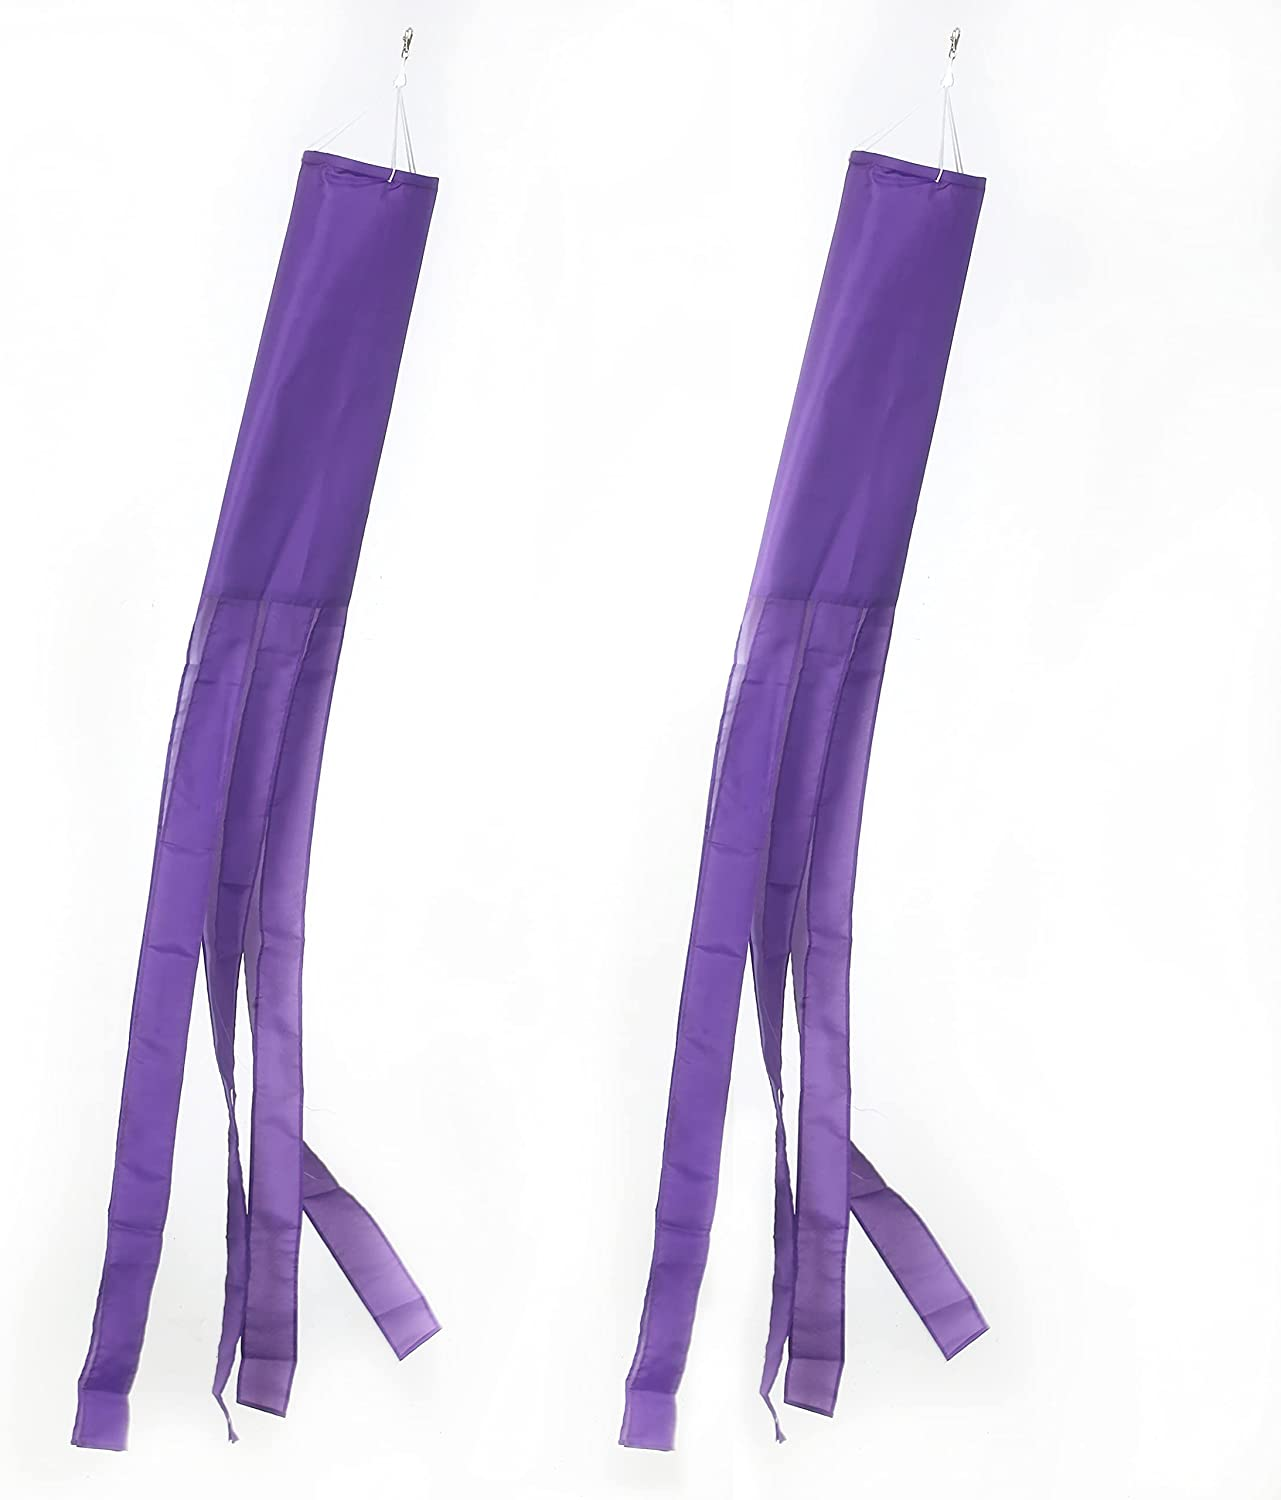 MSFHHA Purple Flag WindSock Solid Color 2 Pack Stripes Wind Socks for Yard and Garden Flag, 60 inch